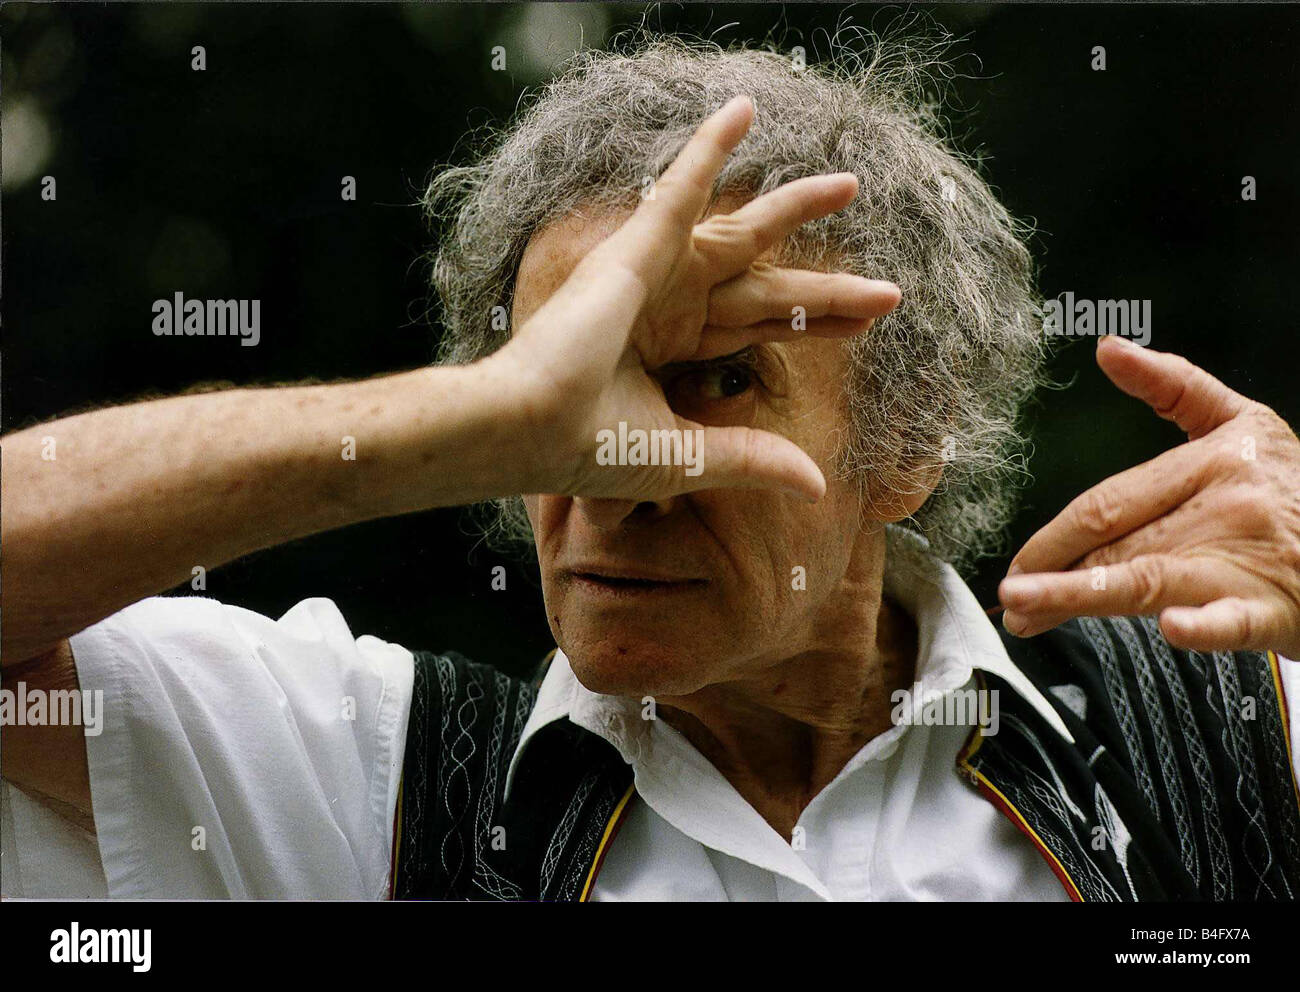 Marcel Marceau French Actor Mime artist DBase Mirrorpix - Stock Image